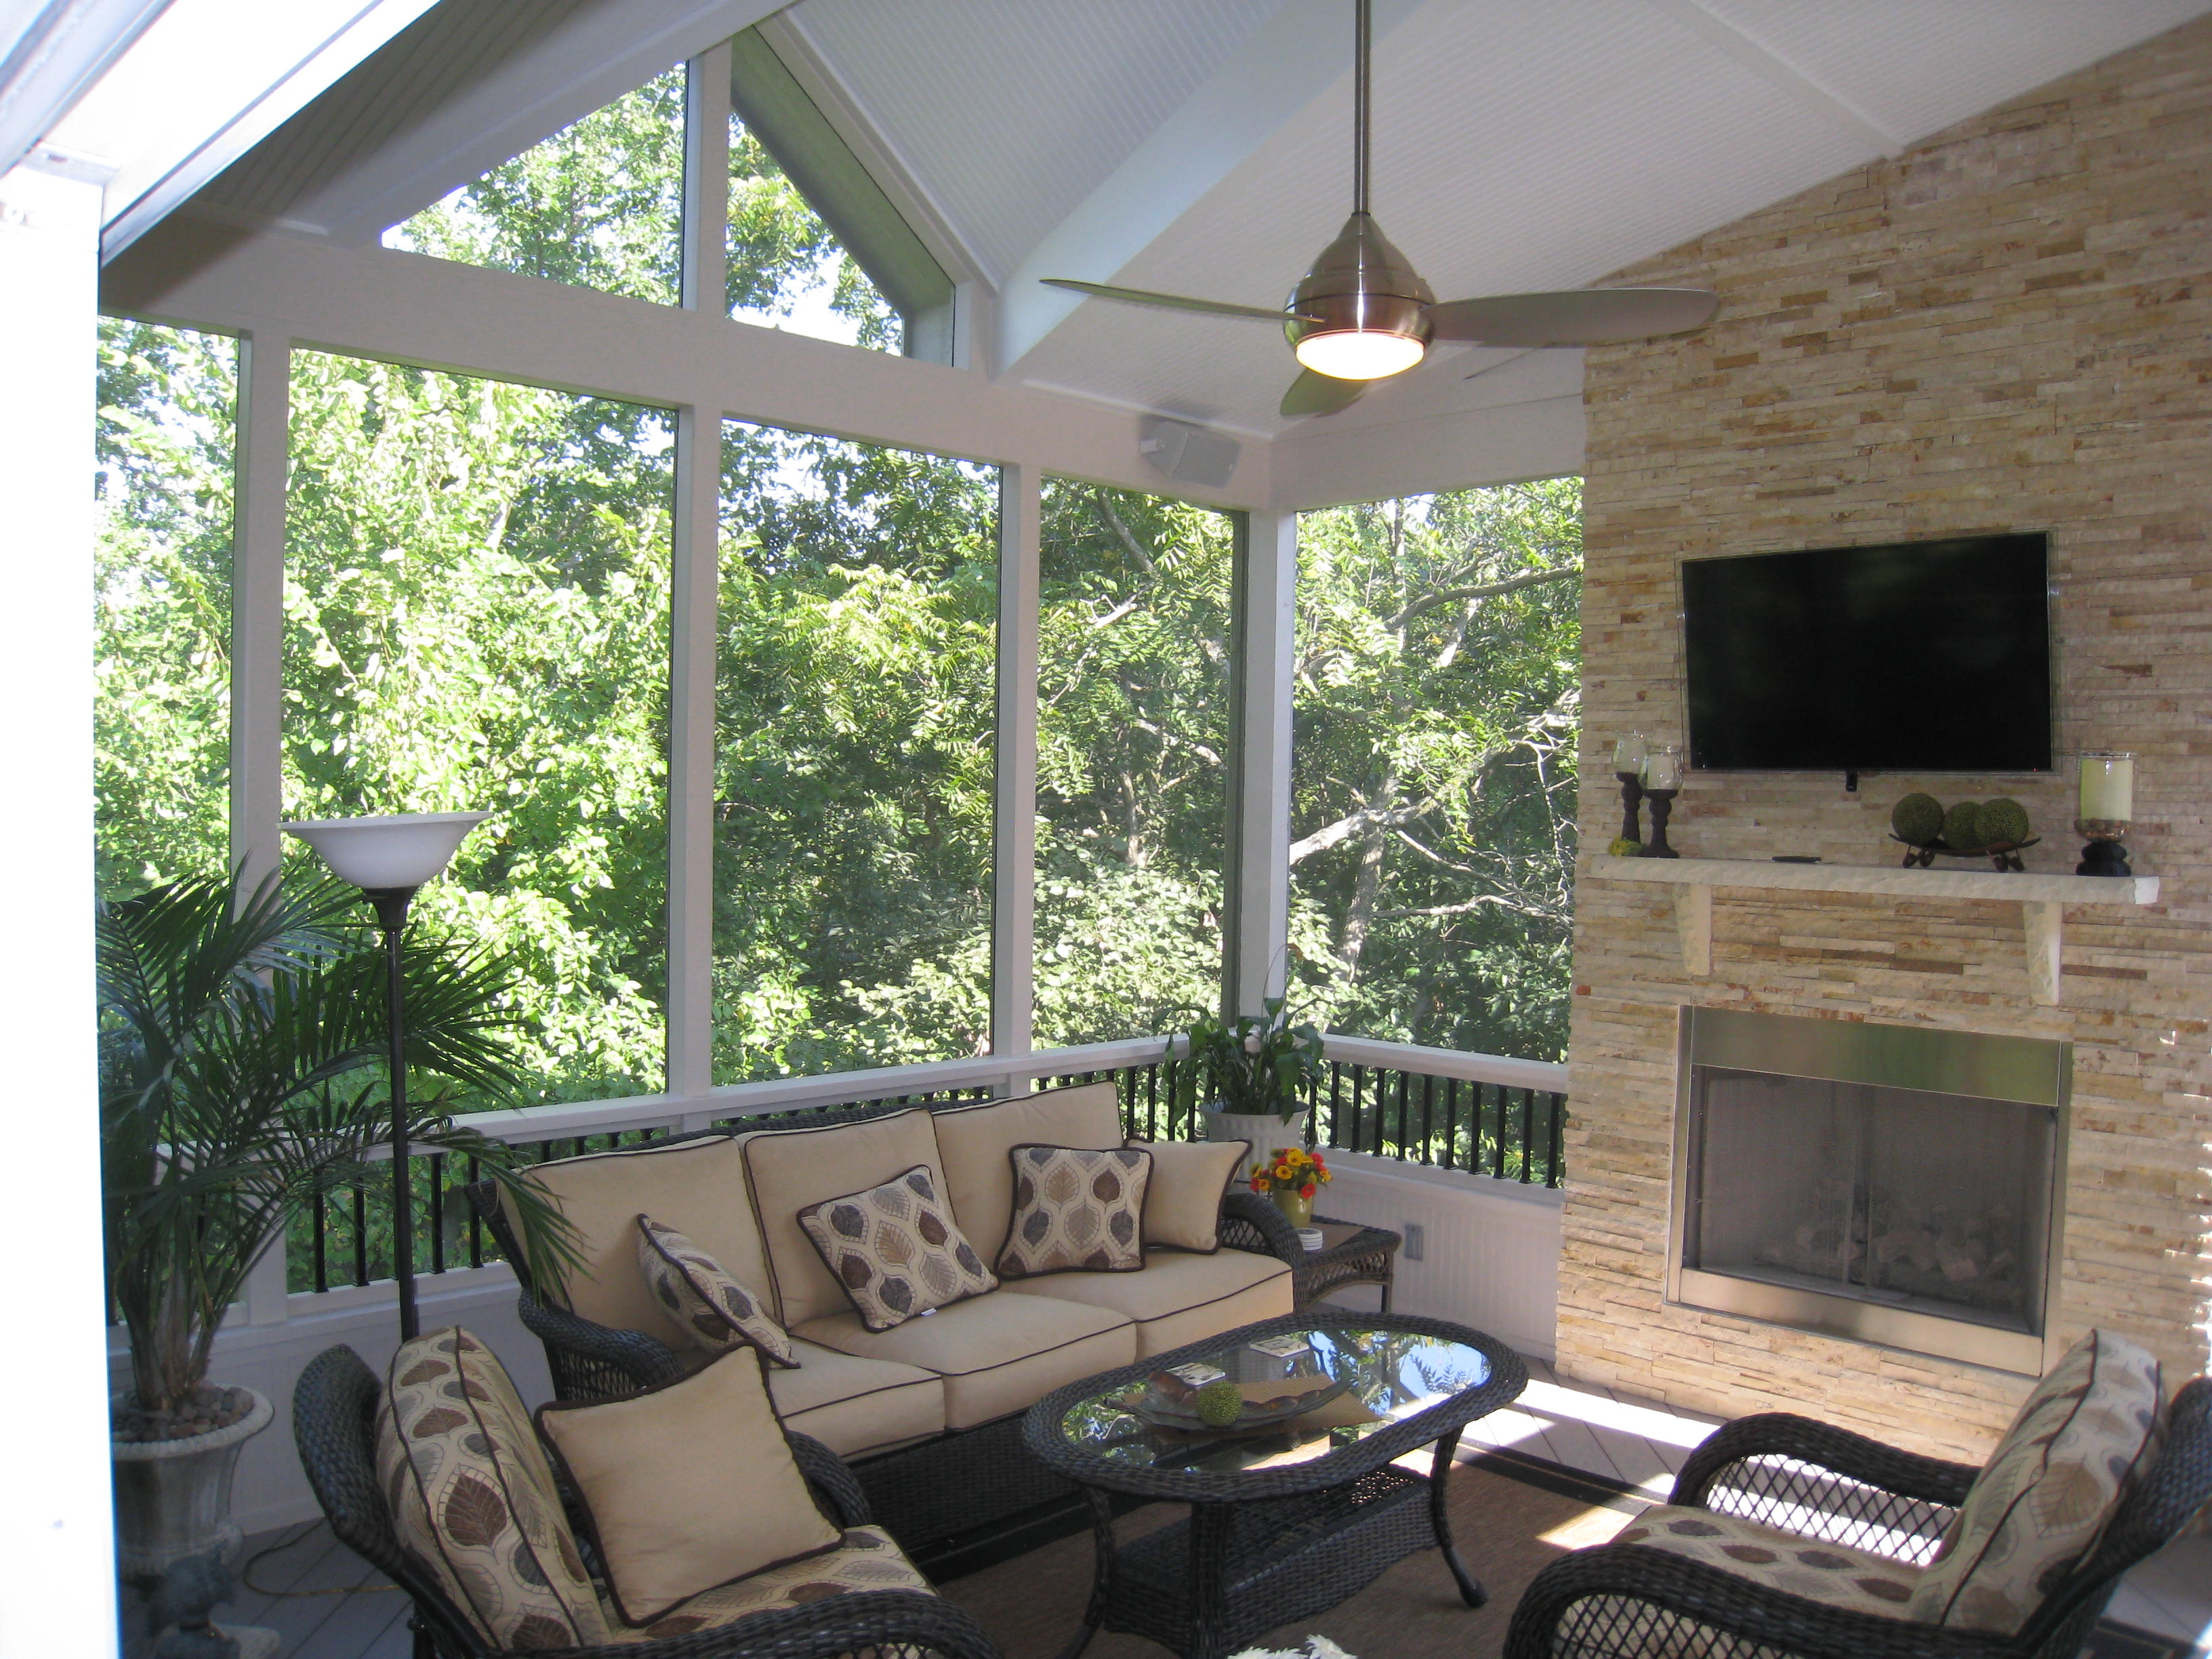 roof styles olathe ks screened porch with outdoor fireplace - Outdoor Screened Porches